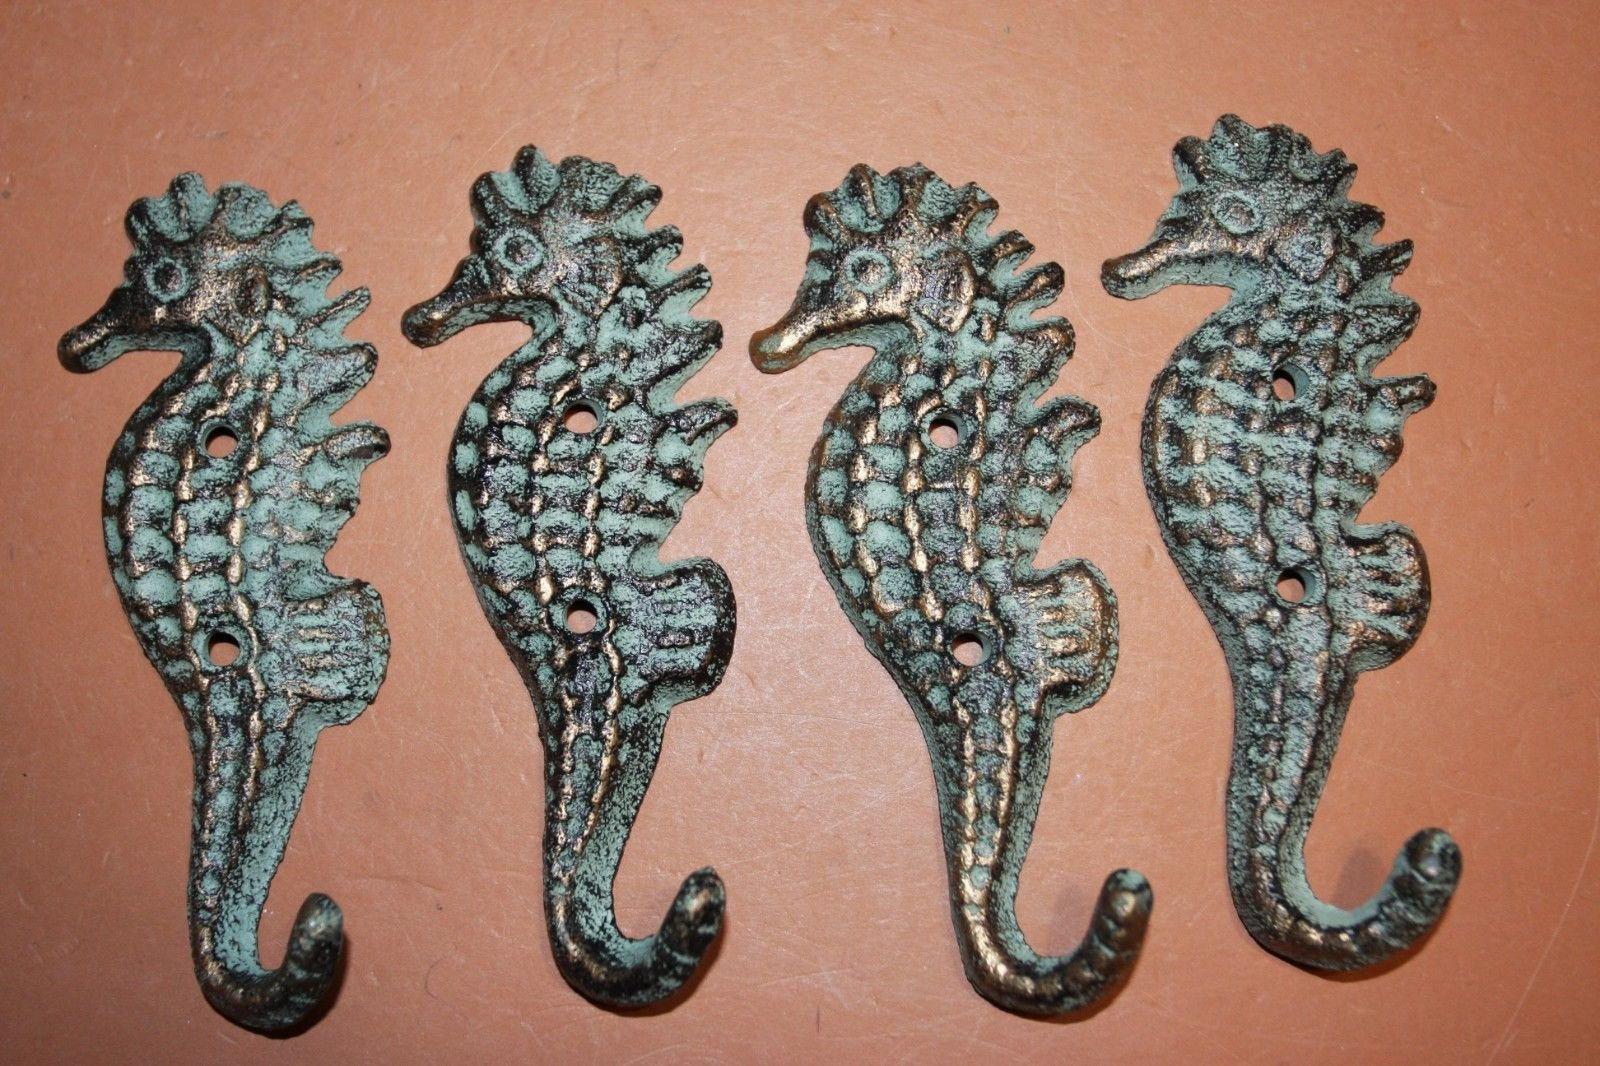 Nautical Beach House Bathroom Decor Seahorse Towel Hooks, N-25